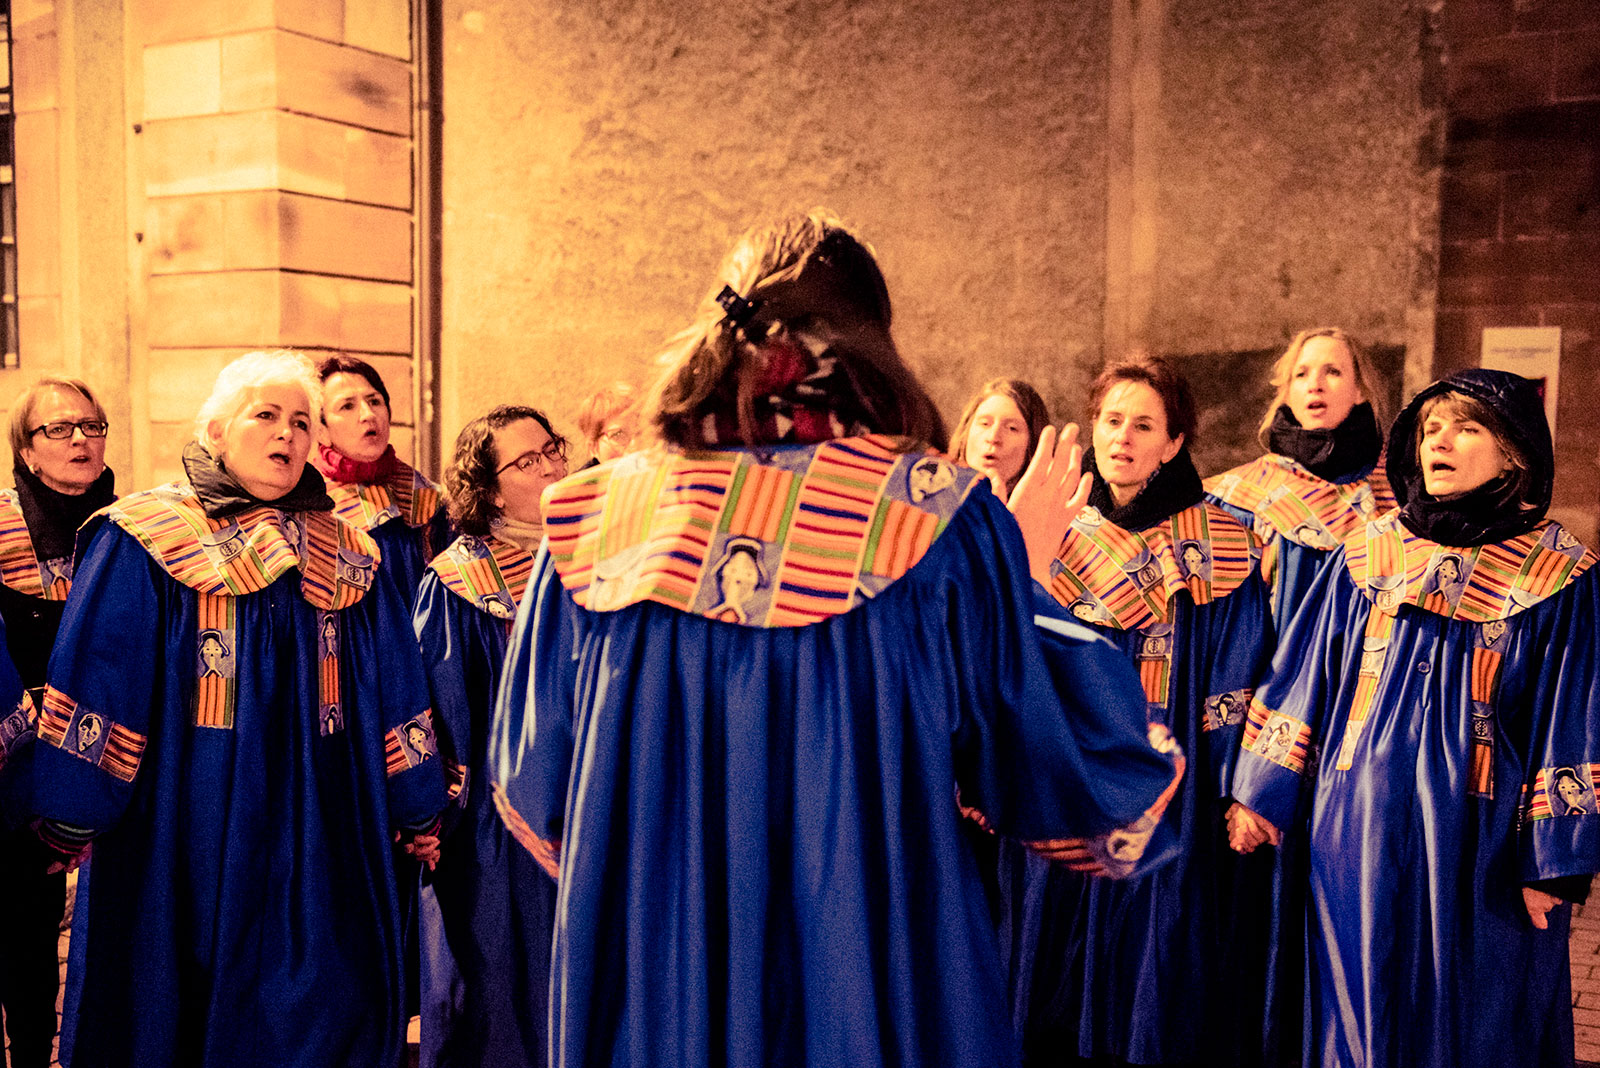 The People Of Strasbourg Sing Christmas